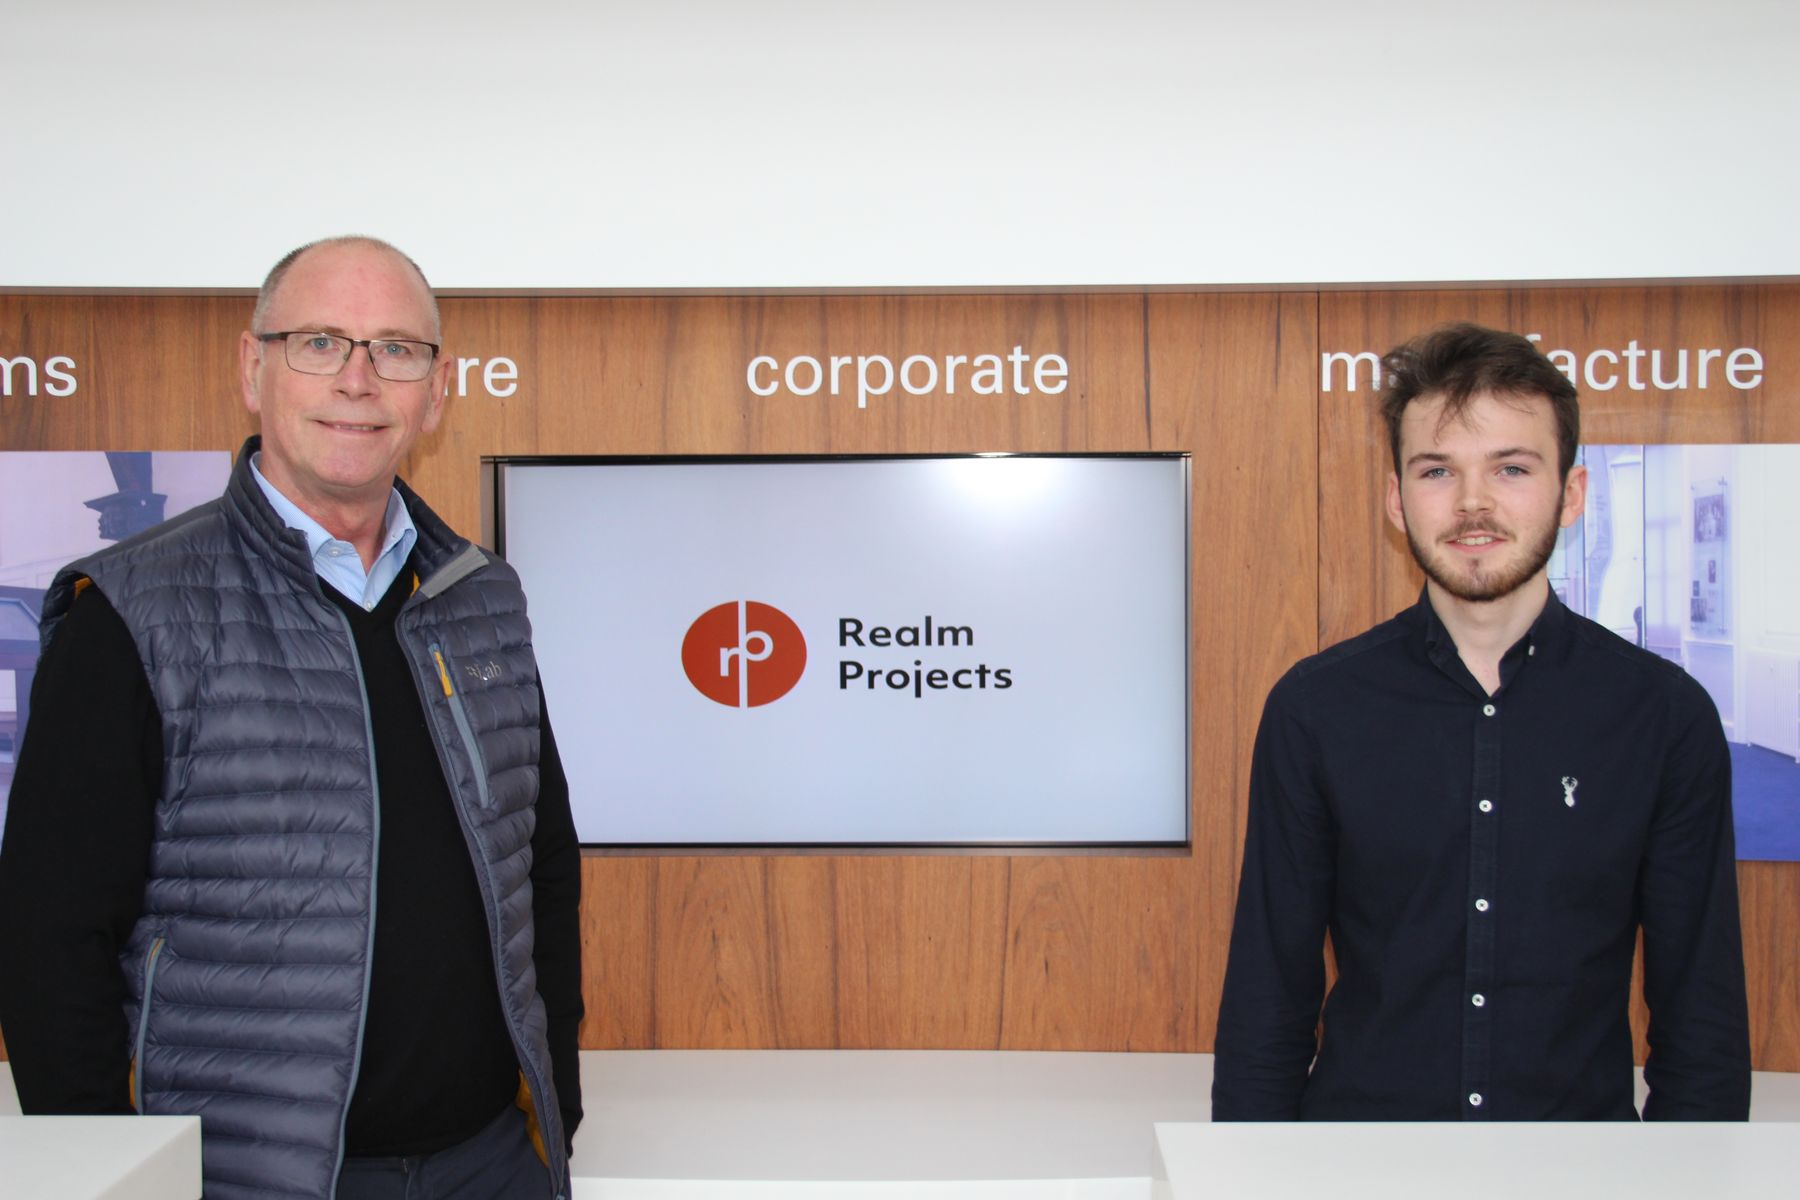 Graeme-Blakey and Sam Hickling from Realm Projects